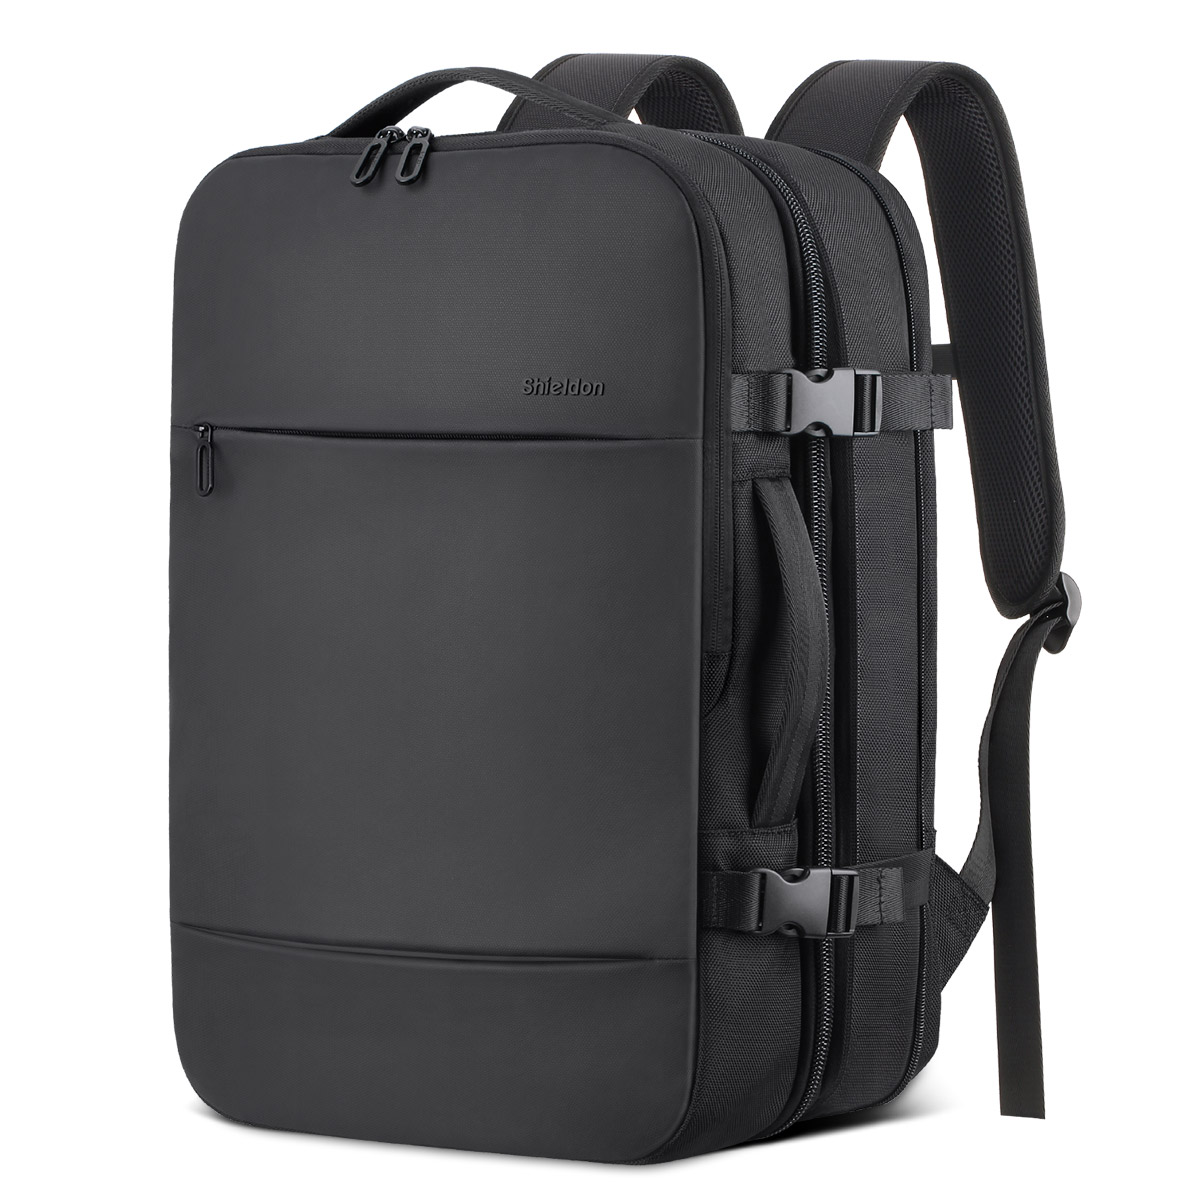 SHIELDON Travel Carry-on Backpack, 17 Inch Laptop Backpack 23L-38L